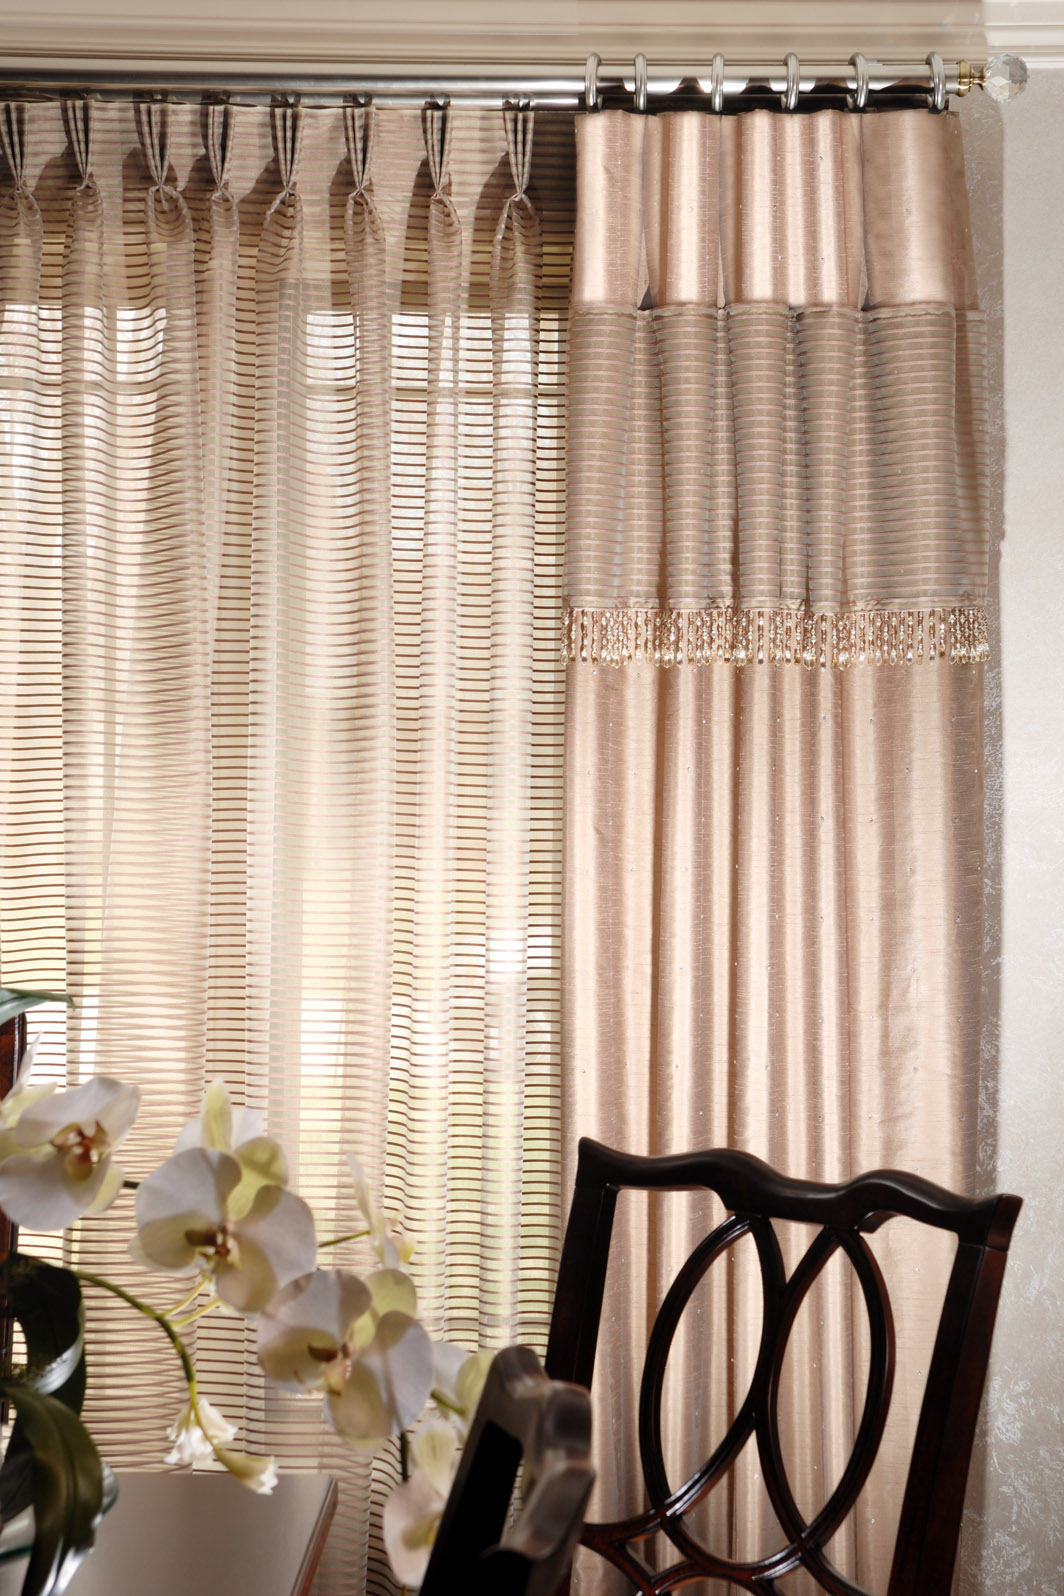 Beautiful Window Treatments the abc's of decorating.t is for terrific window treatment tips